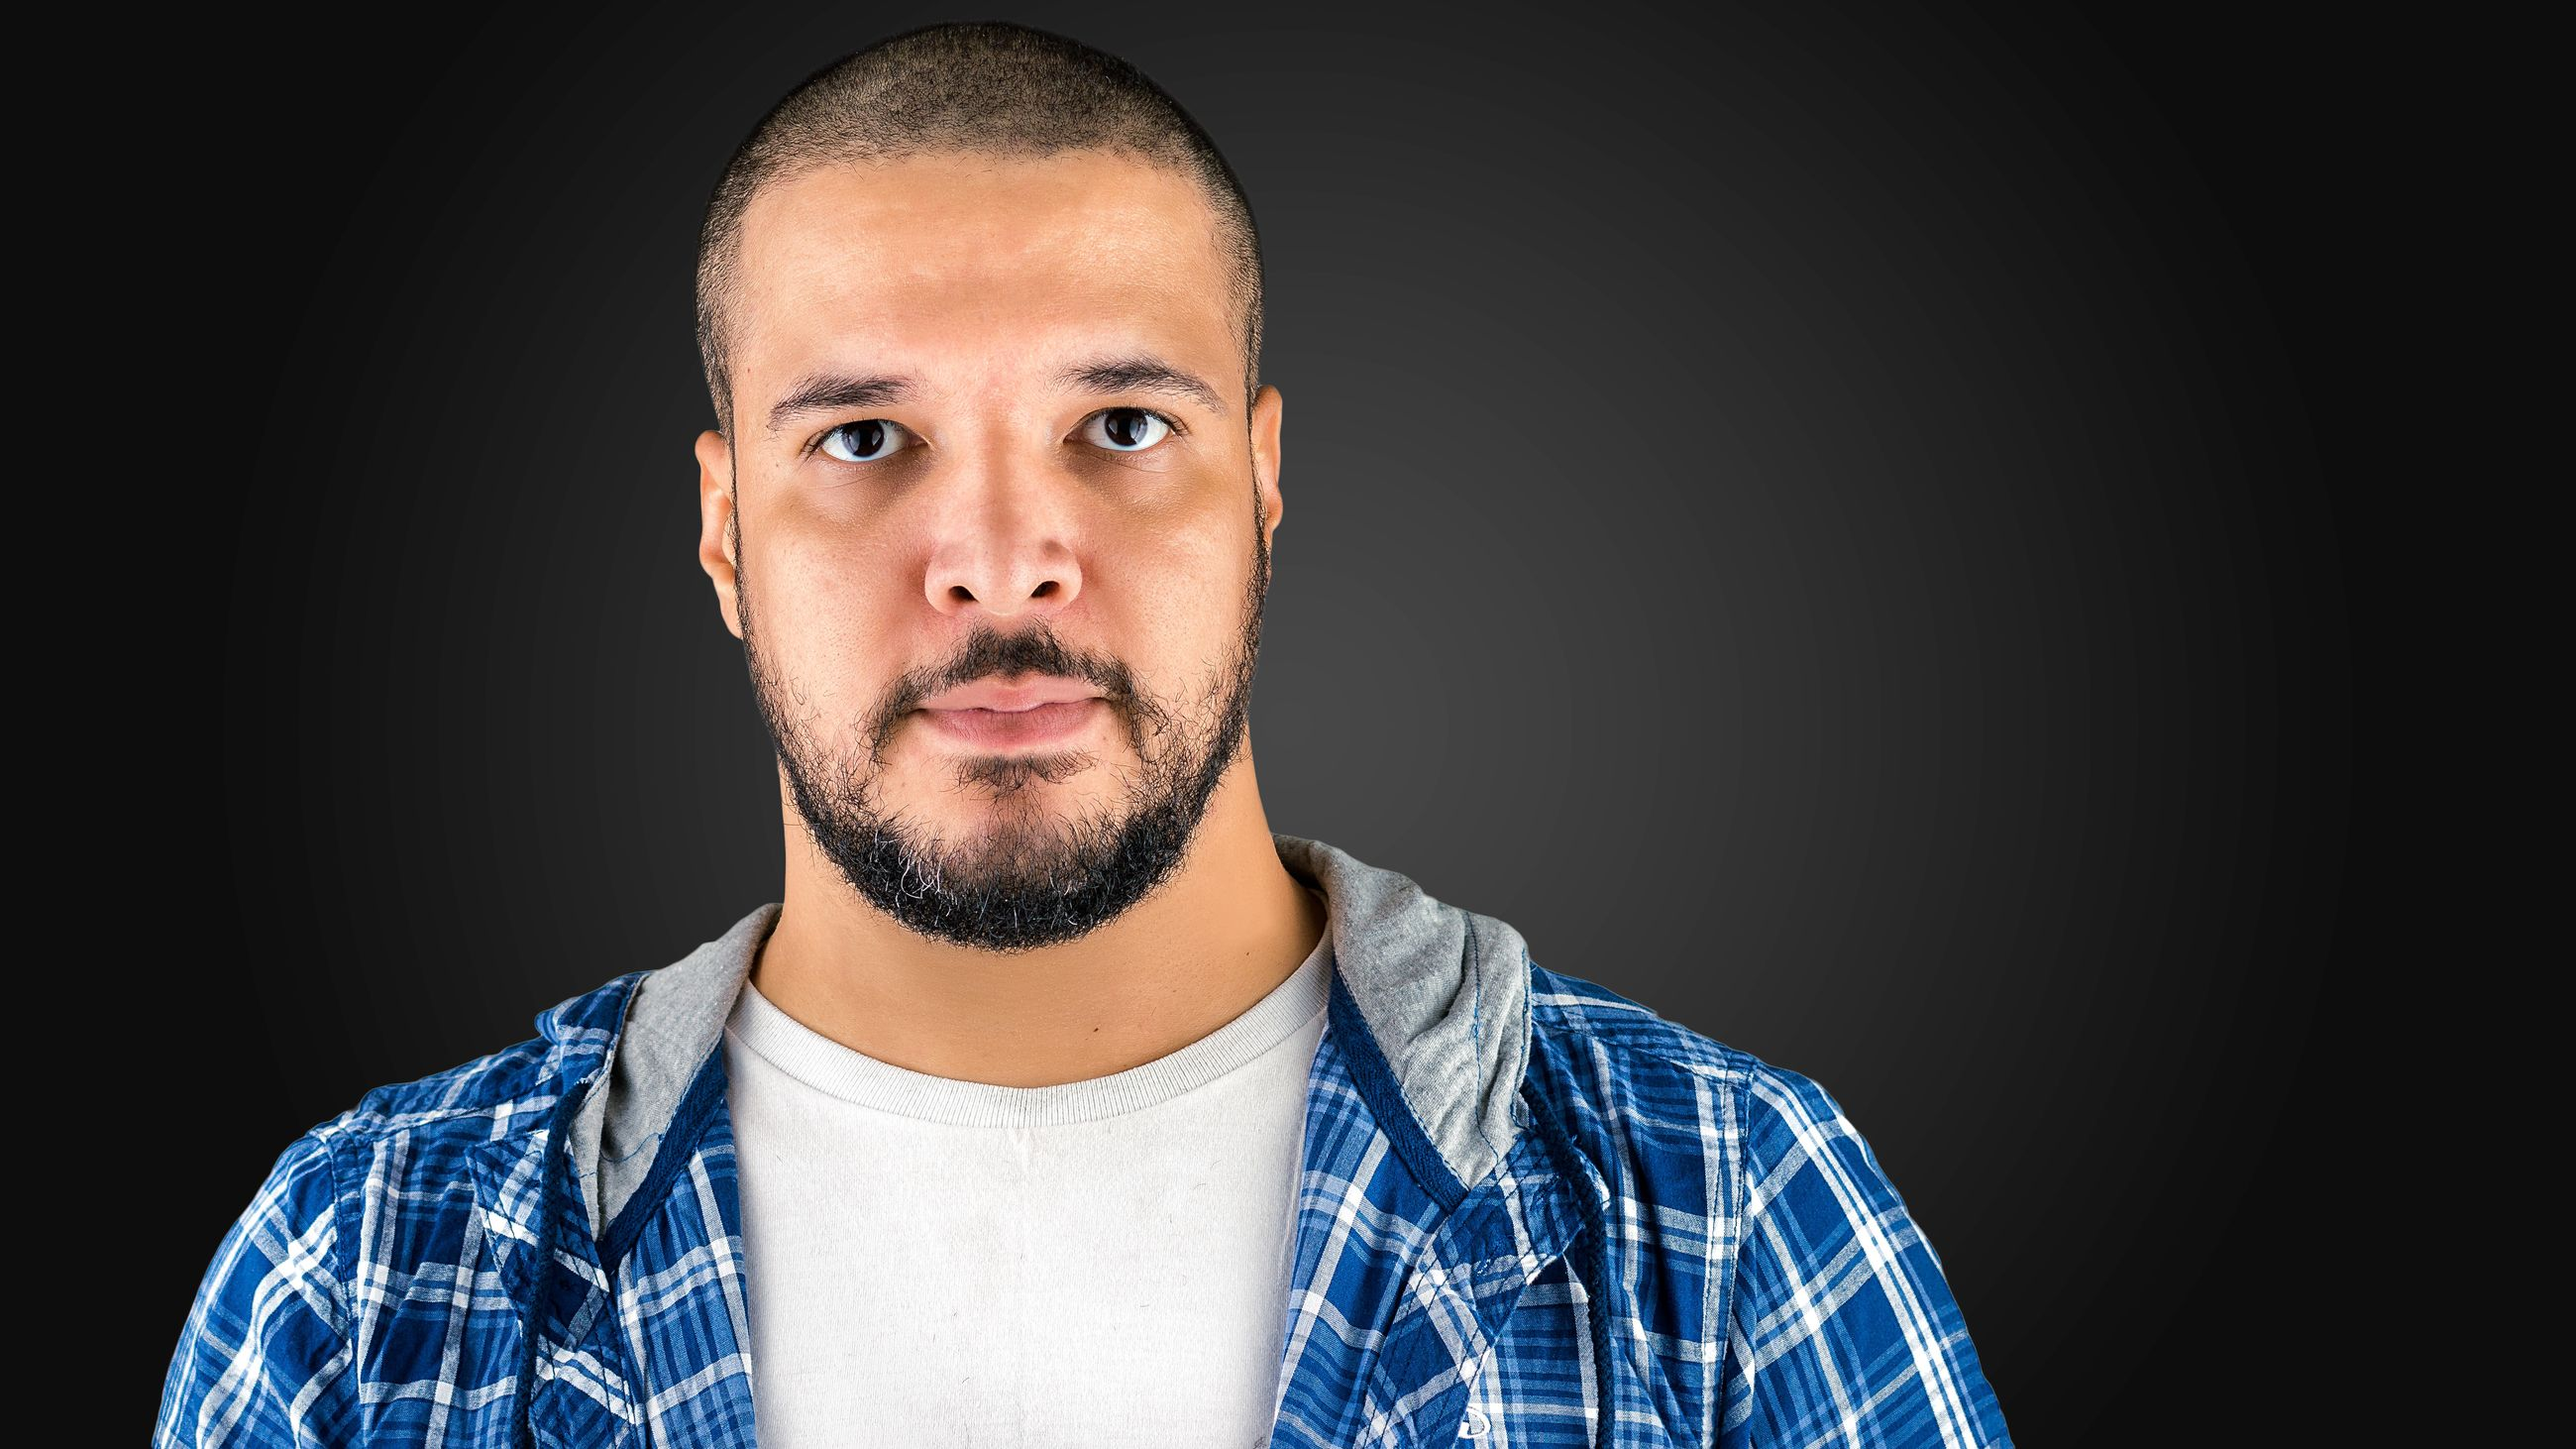 portrait, looking at camera, person, young adult, headshot, front view, lifestyles, black background, studio shot, young men, indoors, leisure activity, mid adult, casual clothing, mid adult men, close-up, head and shoulders, human face